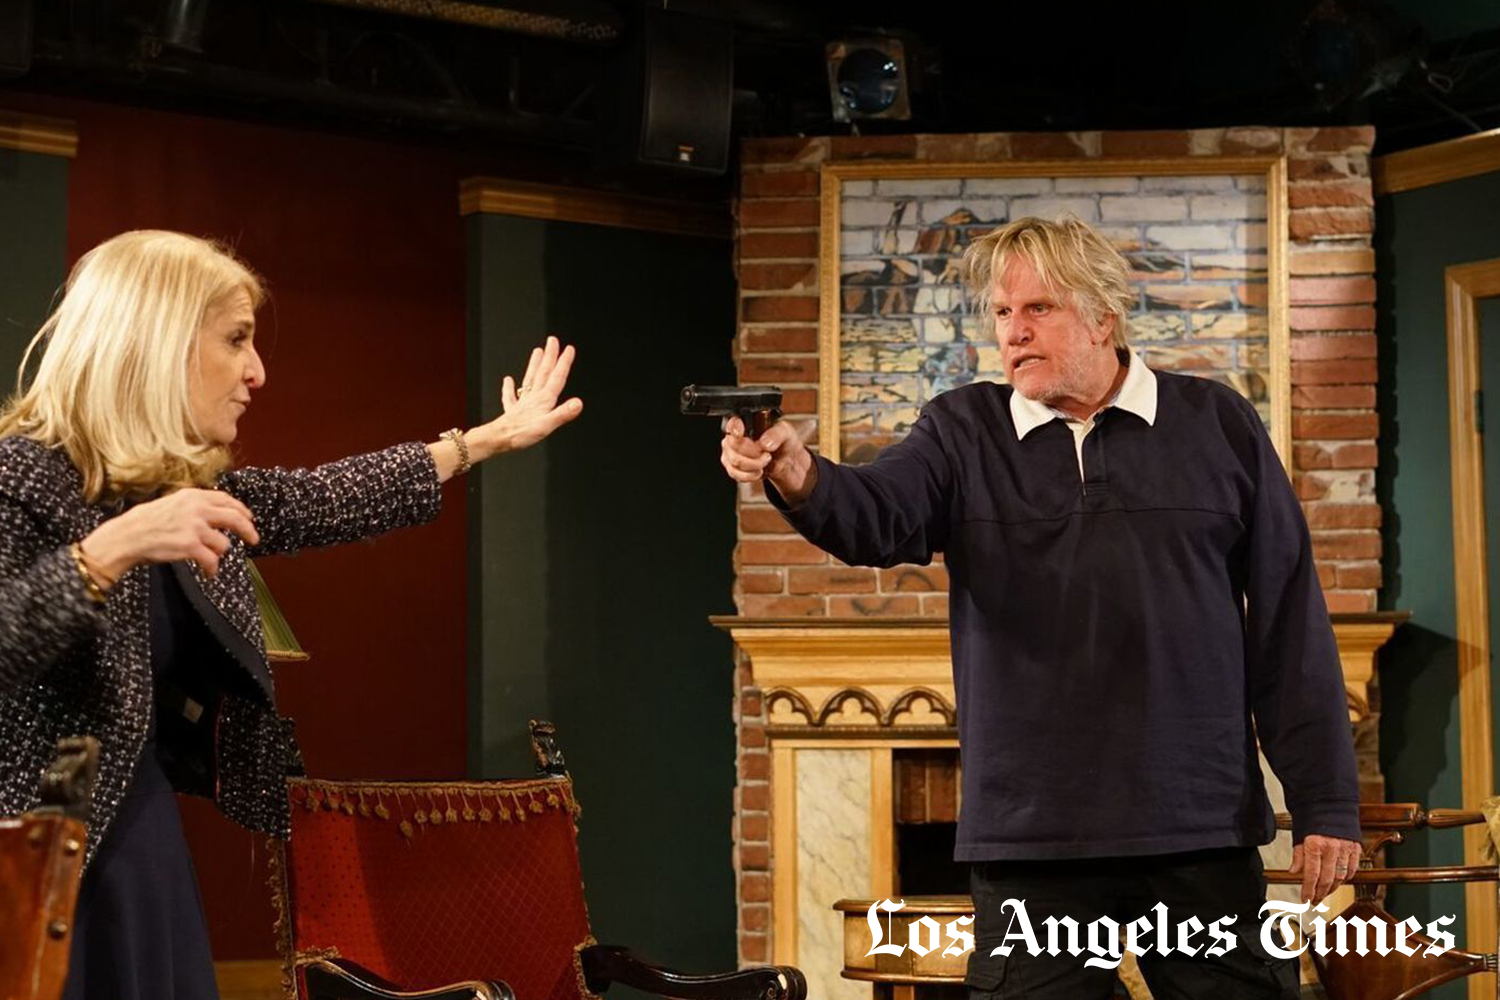 Gary Busey on Gary Busey: A conversation about his first stage role   Read More...